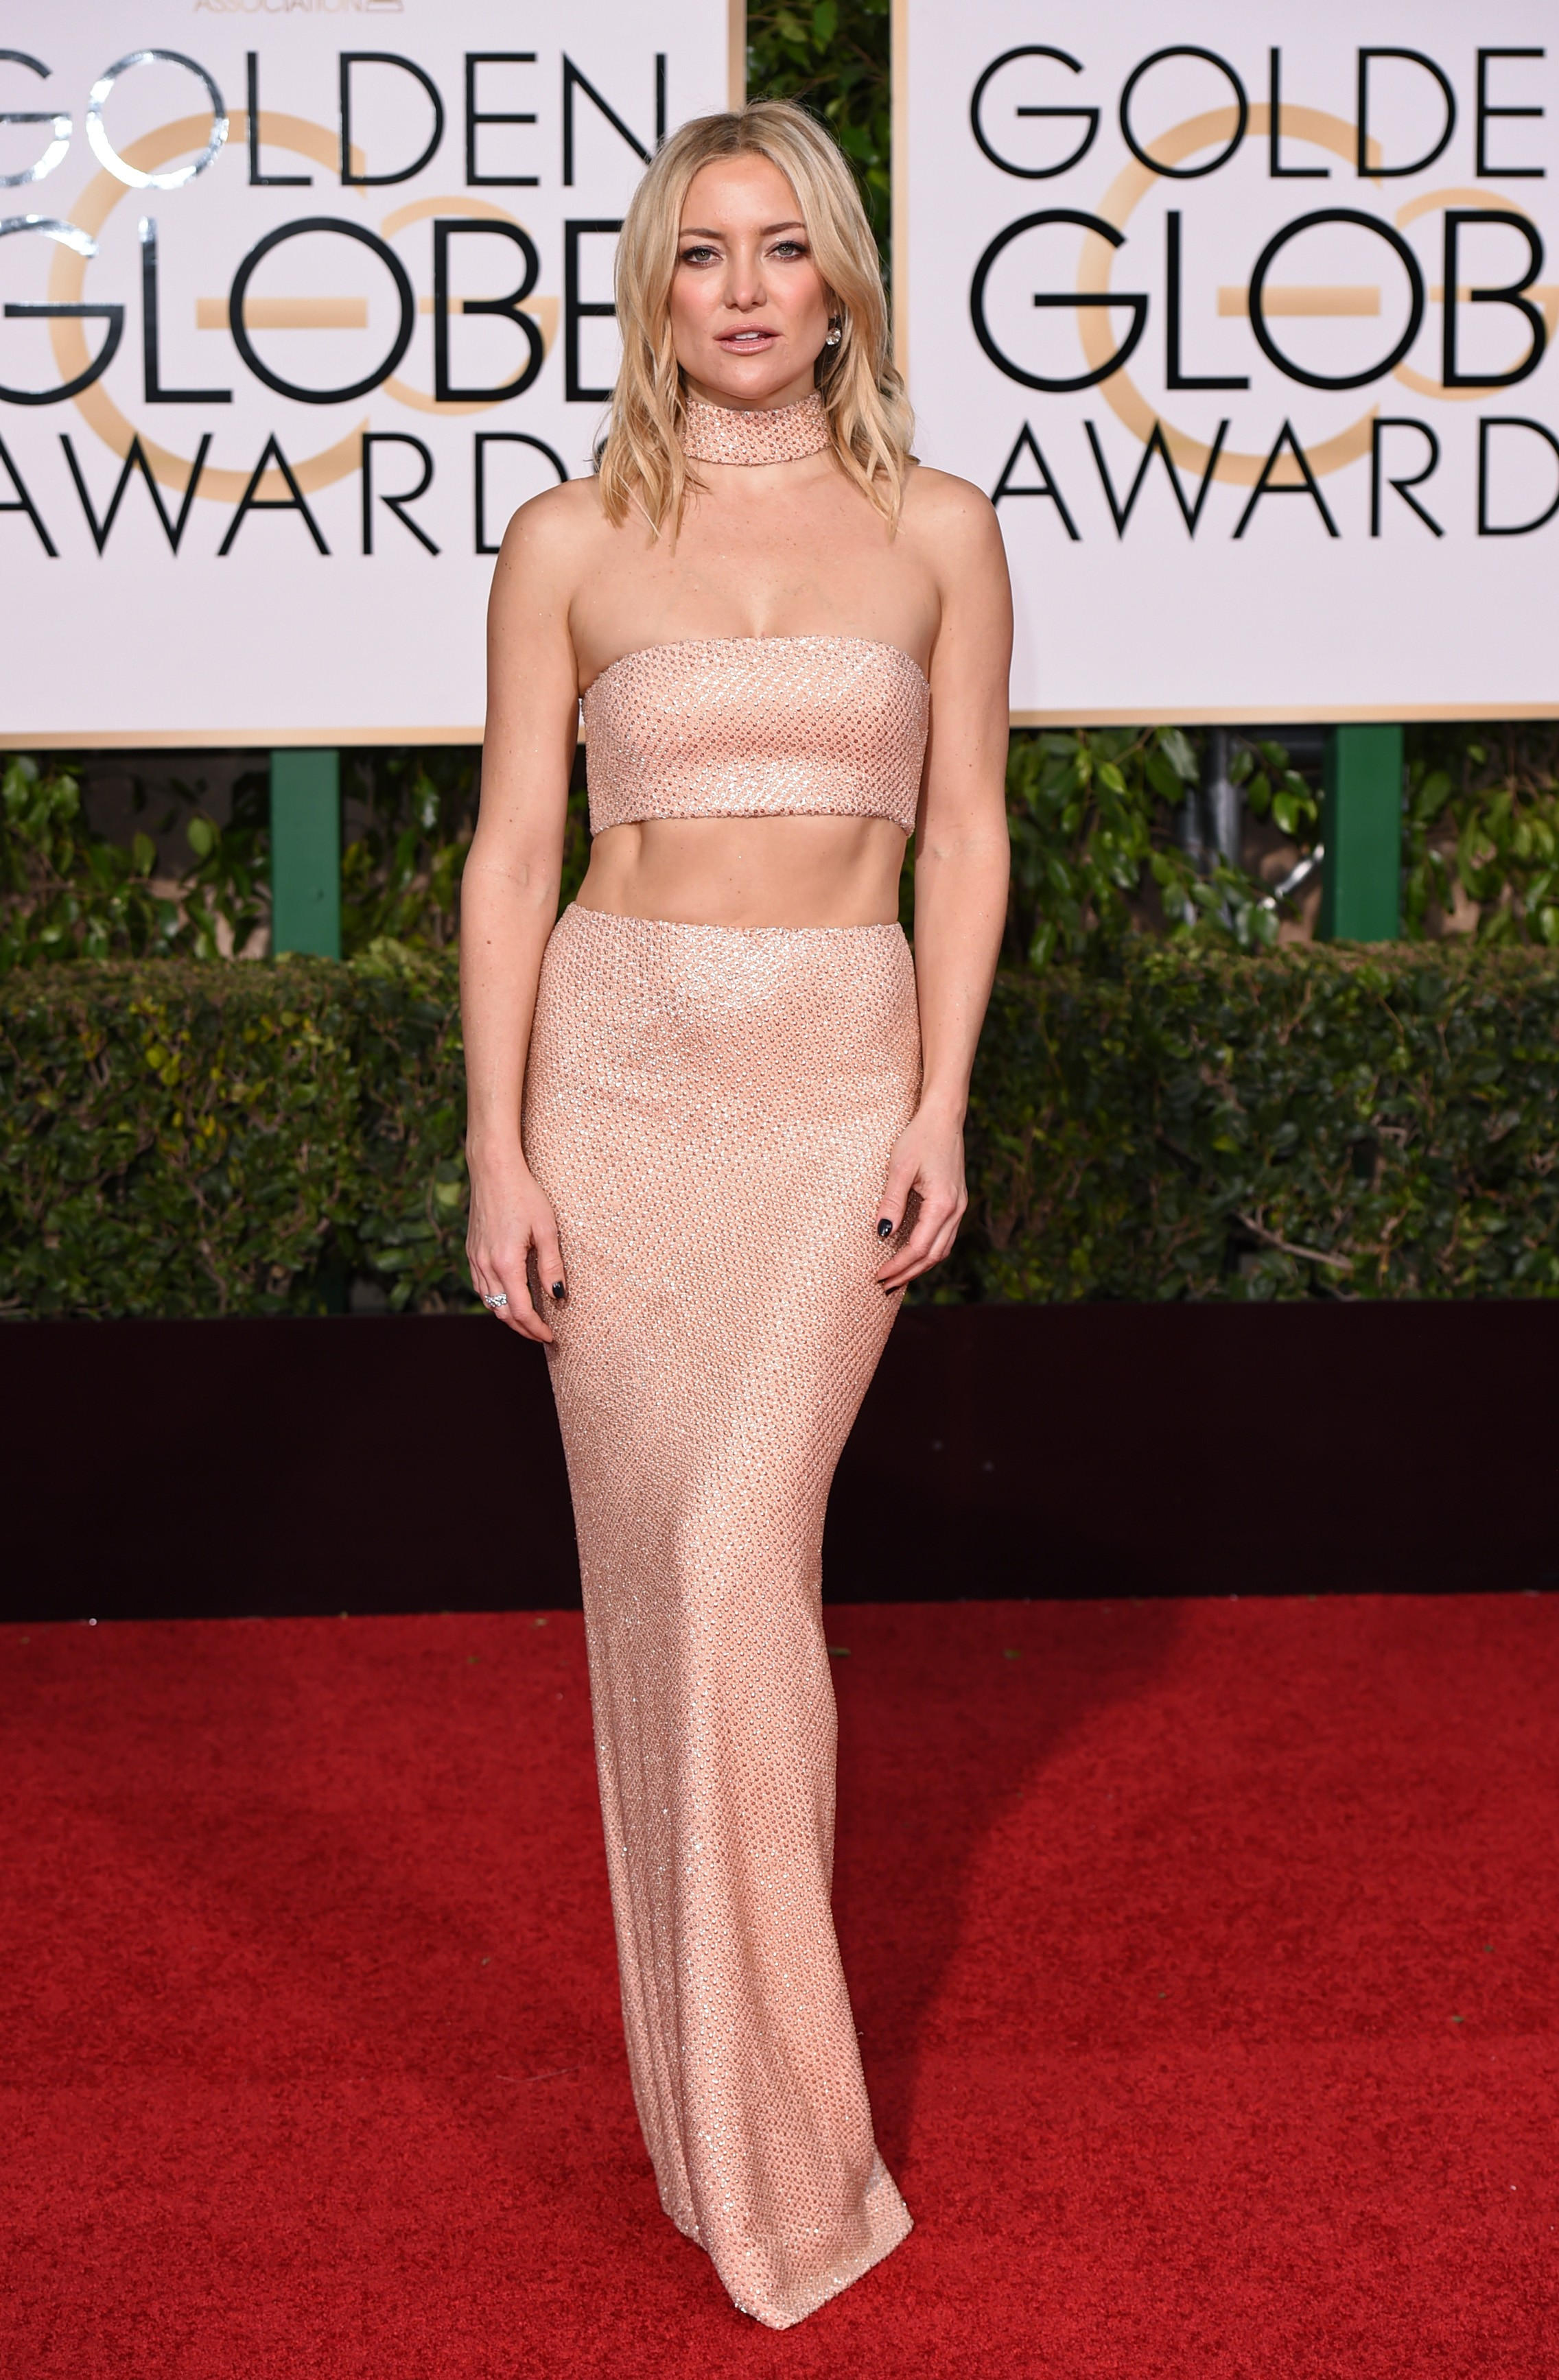 Mandatory Credit: Photo by David Fisher/REX/Shutterstock (5528305ev) Kate Hudson 73rd Annual Golden Globe Awards, Arrivals, Los Angeles, America - 10 Jan 2016